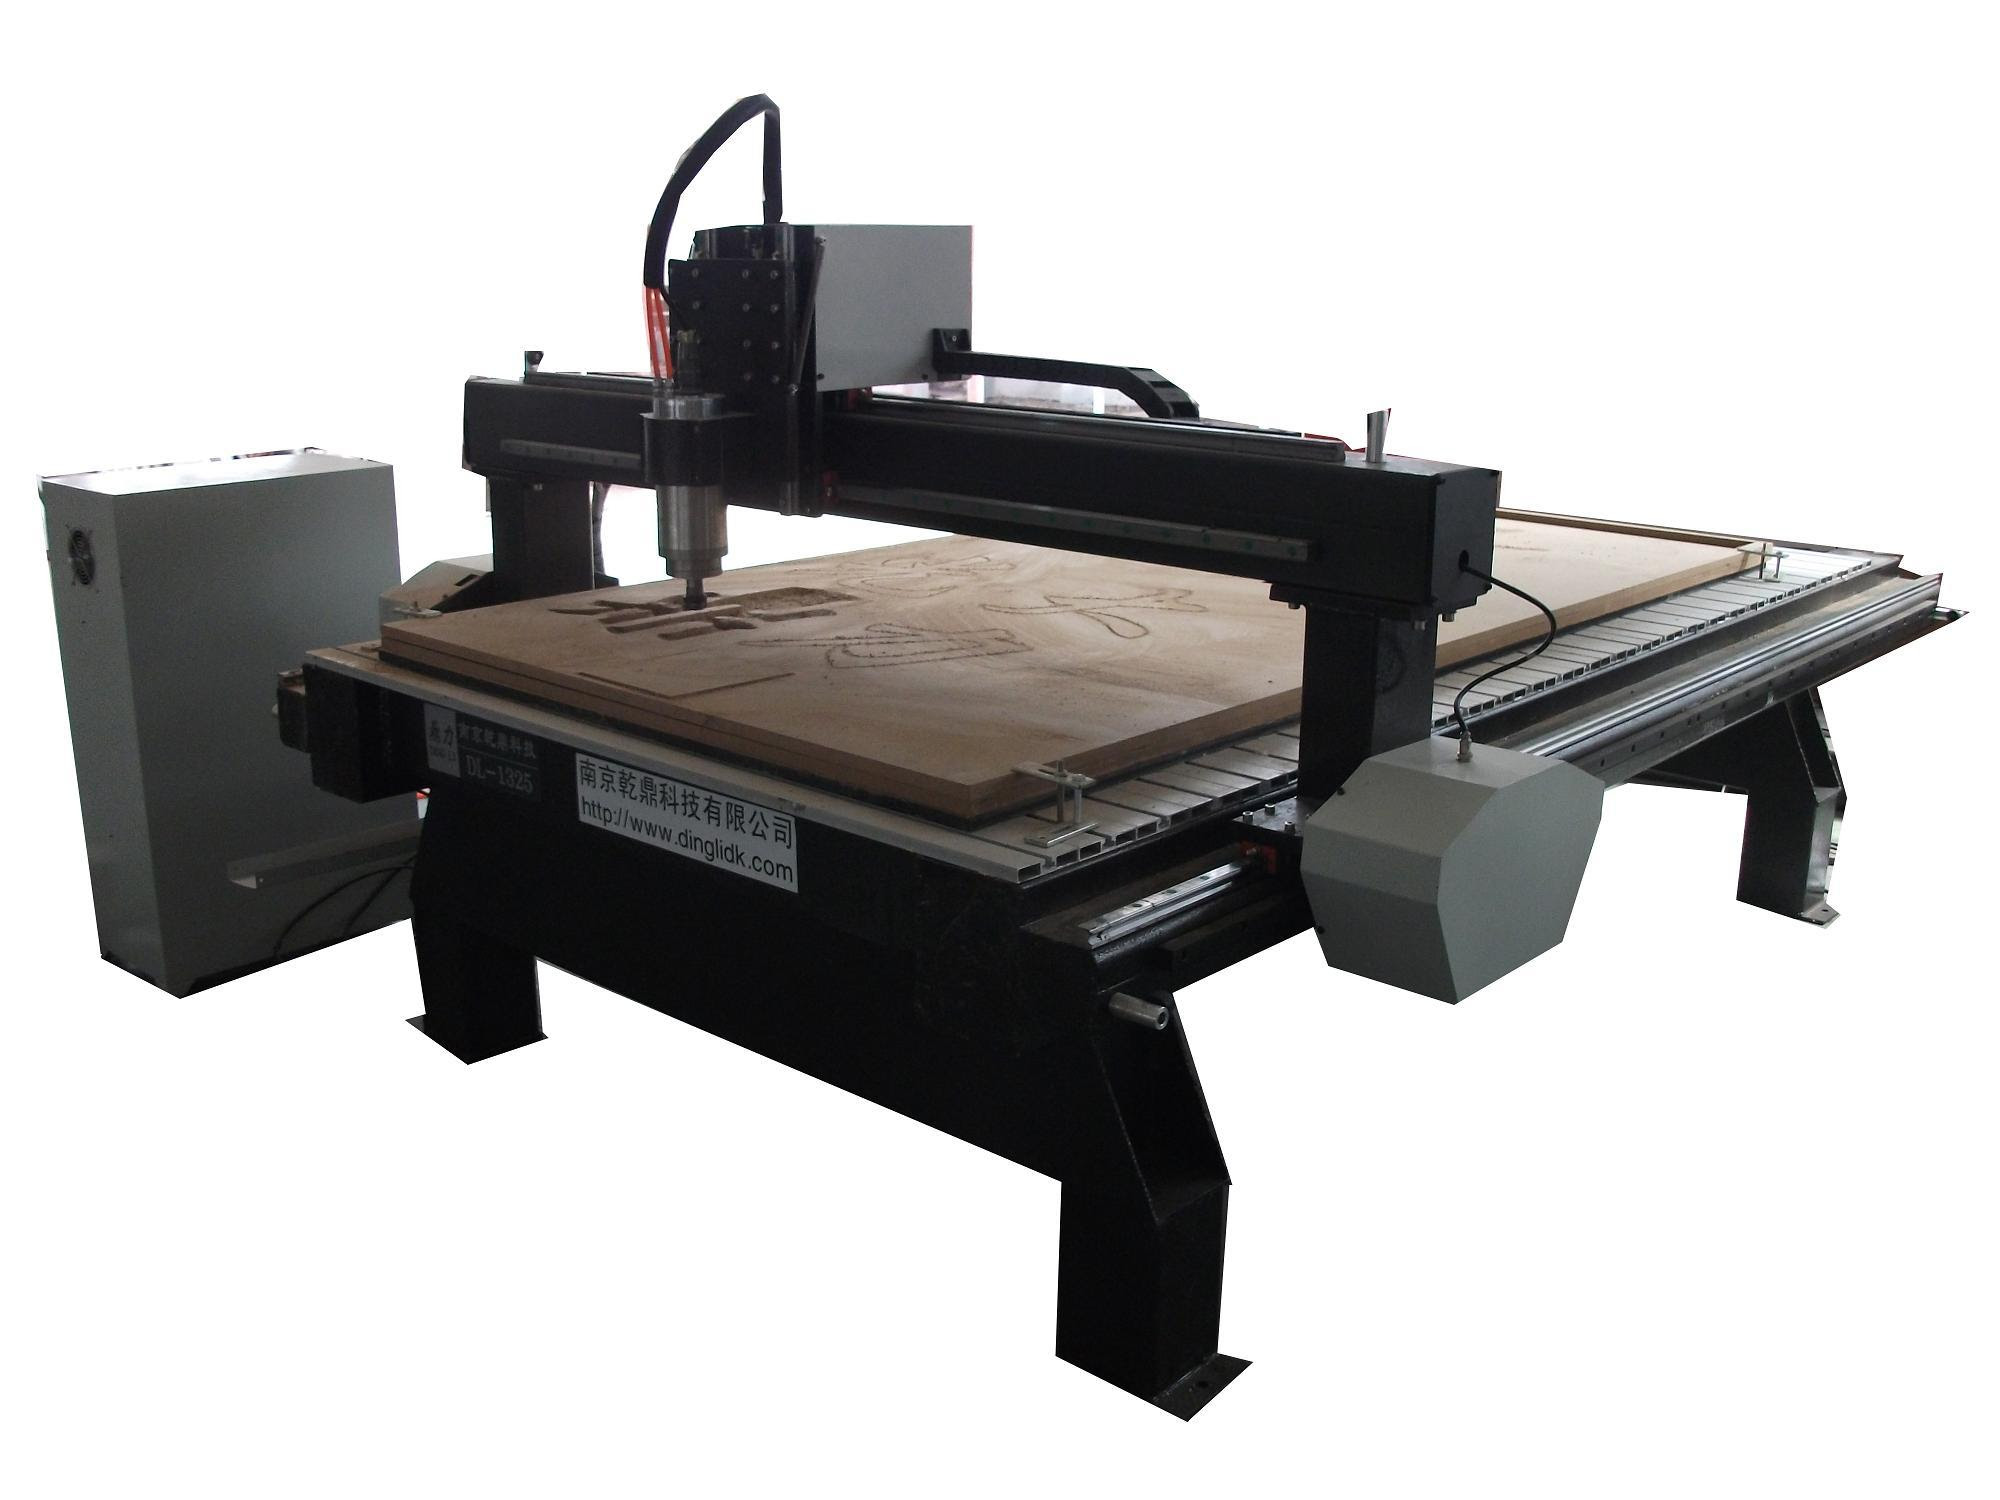 CNC-Woodworking-Machinery-DL-1325-.jpg